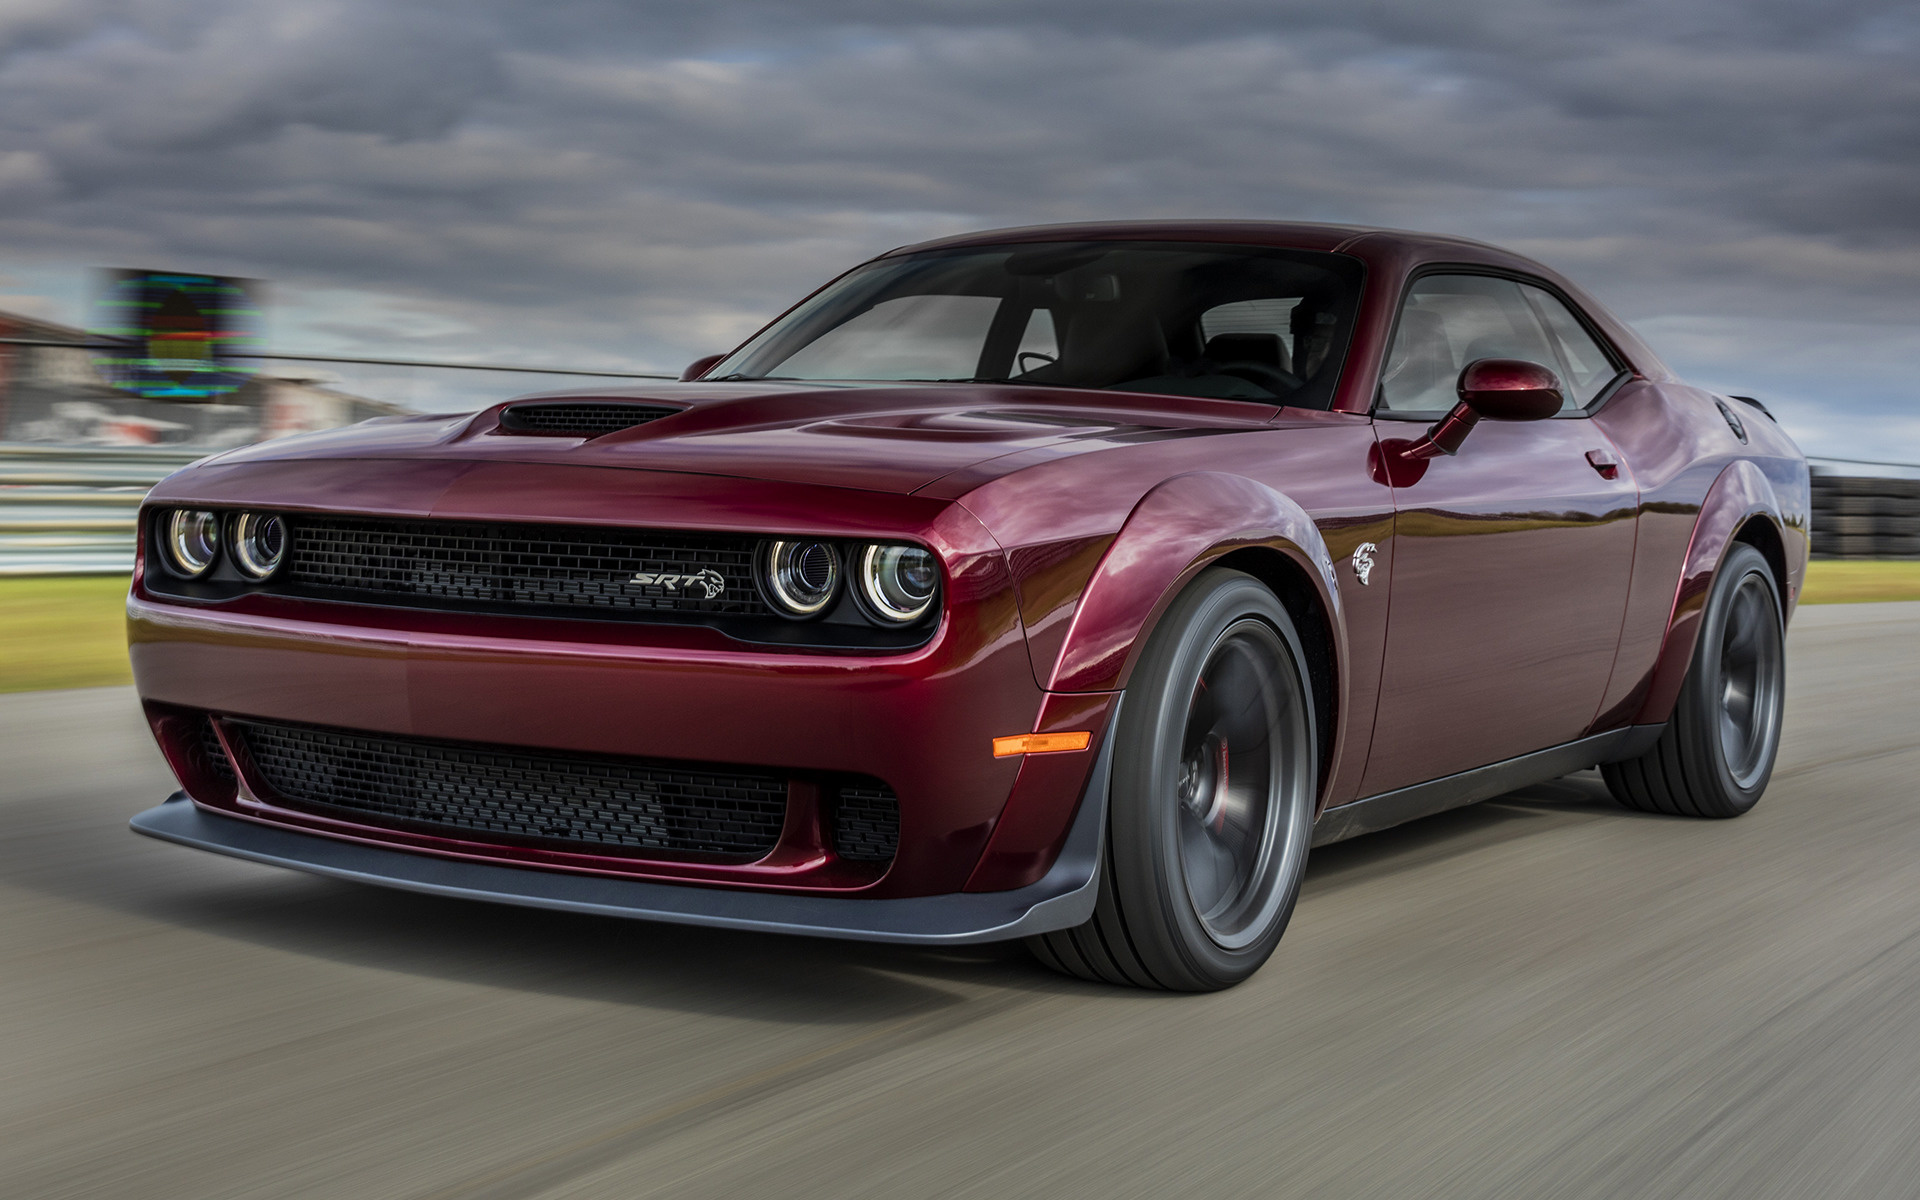 Dodge Challenger SRT Hellcat Widebody (2018) Wallpapers and HD Images - Car Pixel